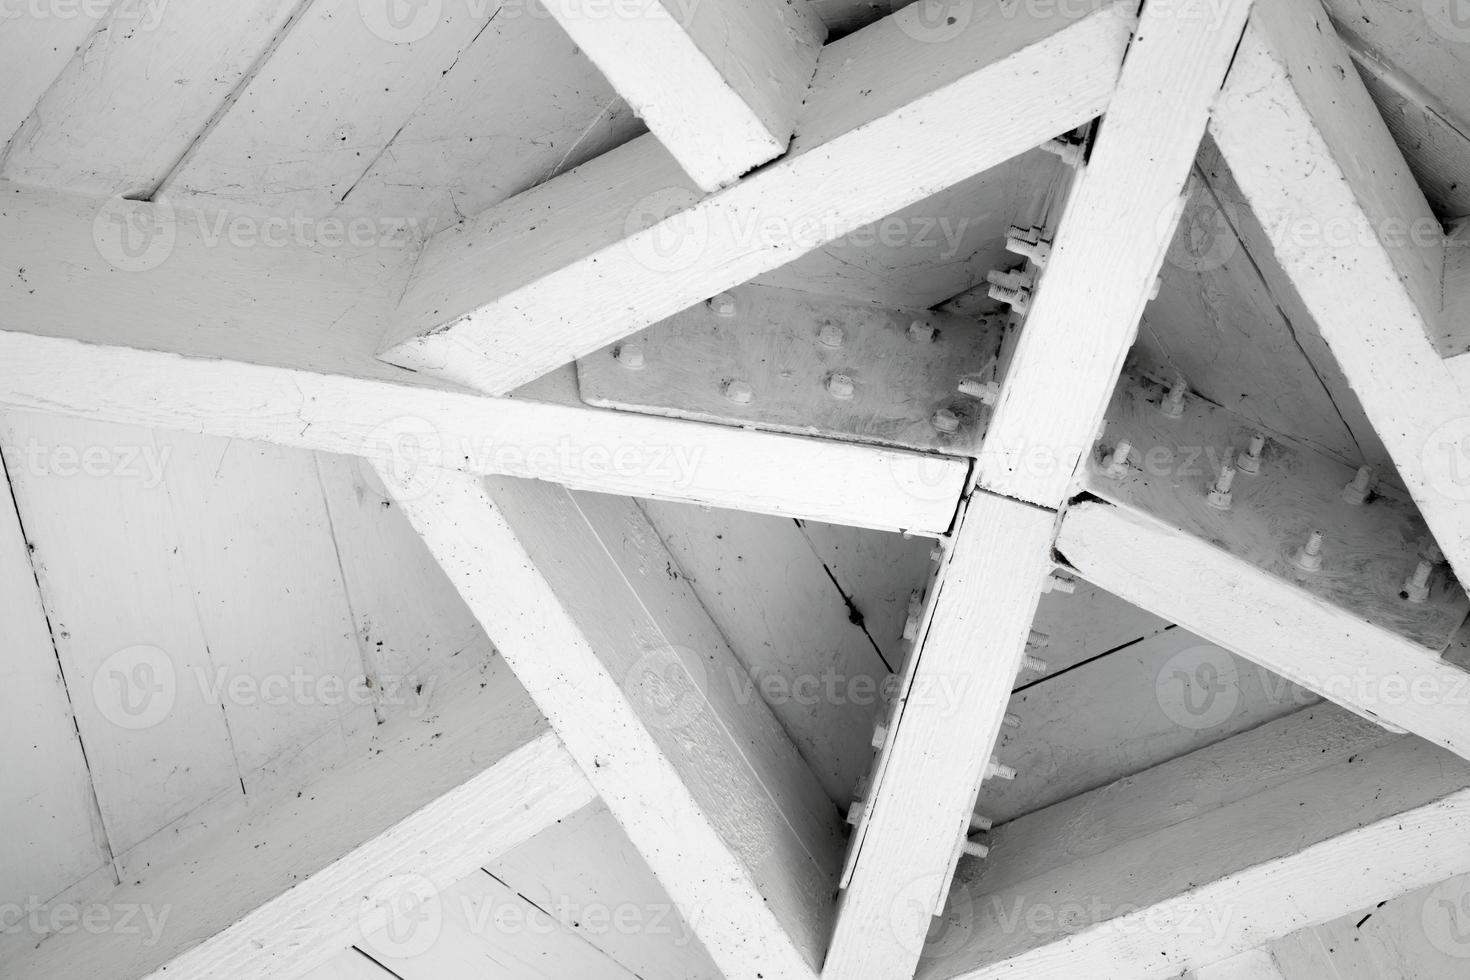 Abstract wooden architecture fragment, roof center photo